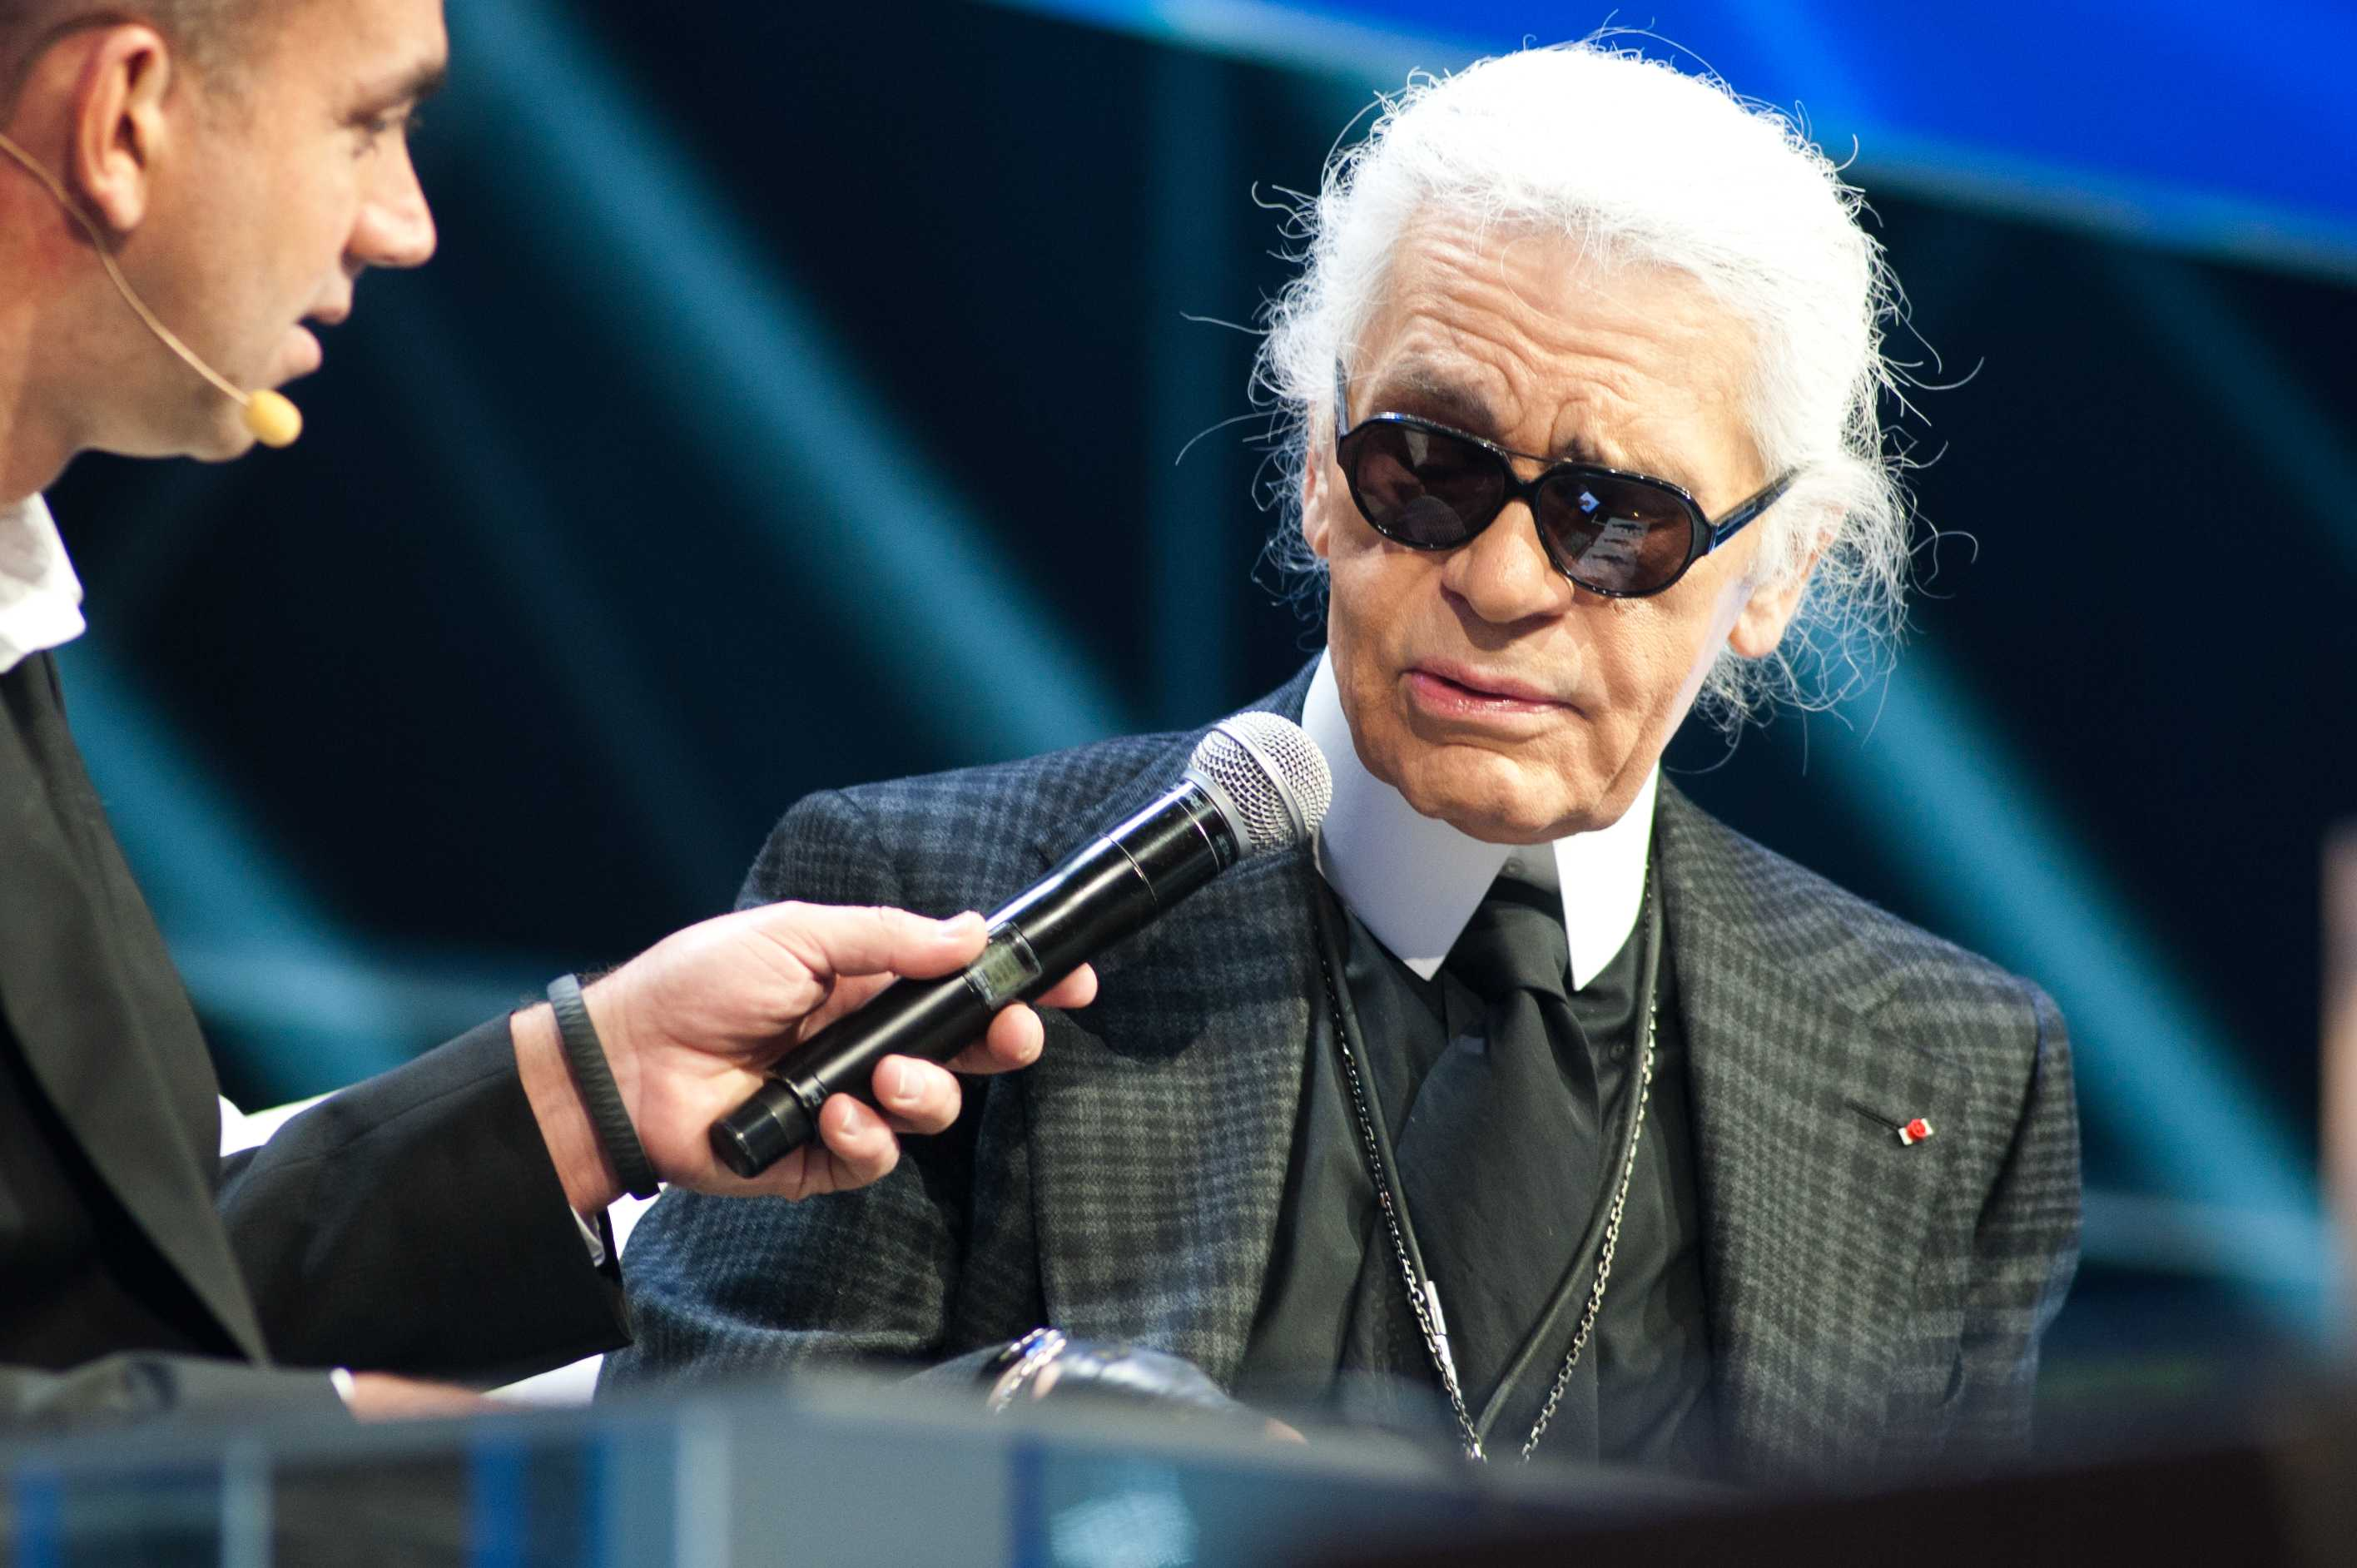 Fashion students mourn the late Karl Lagerfeld